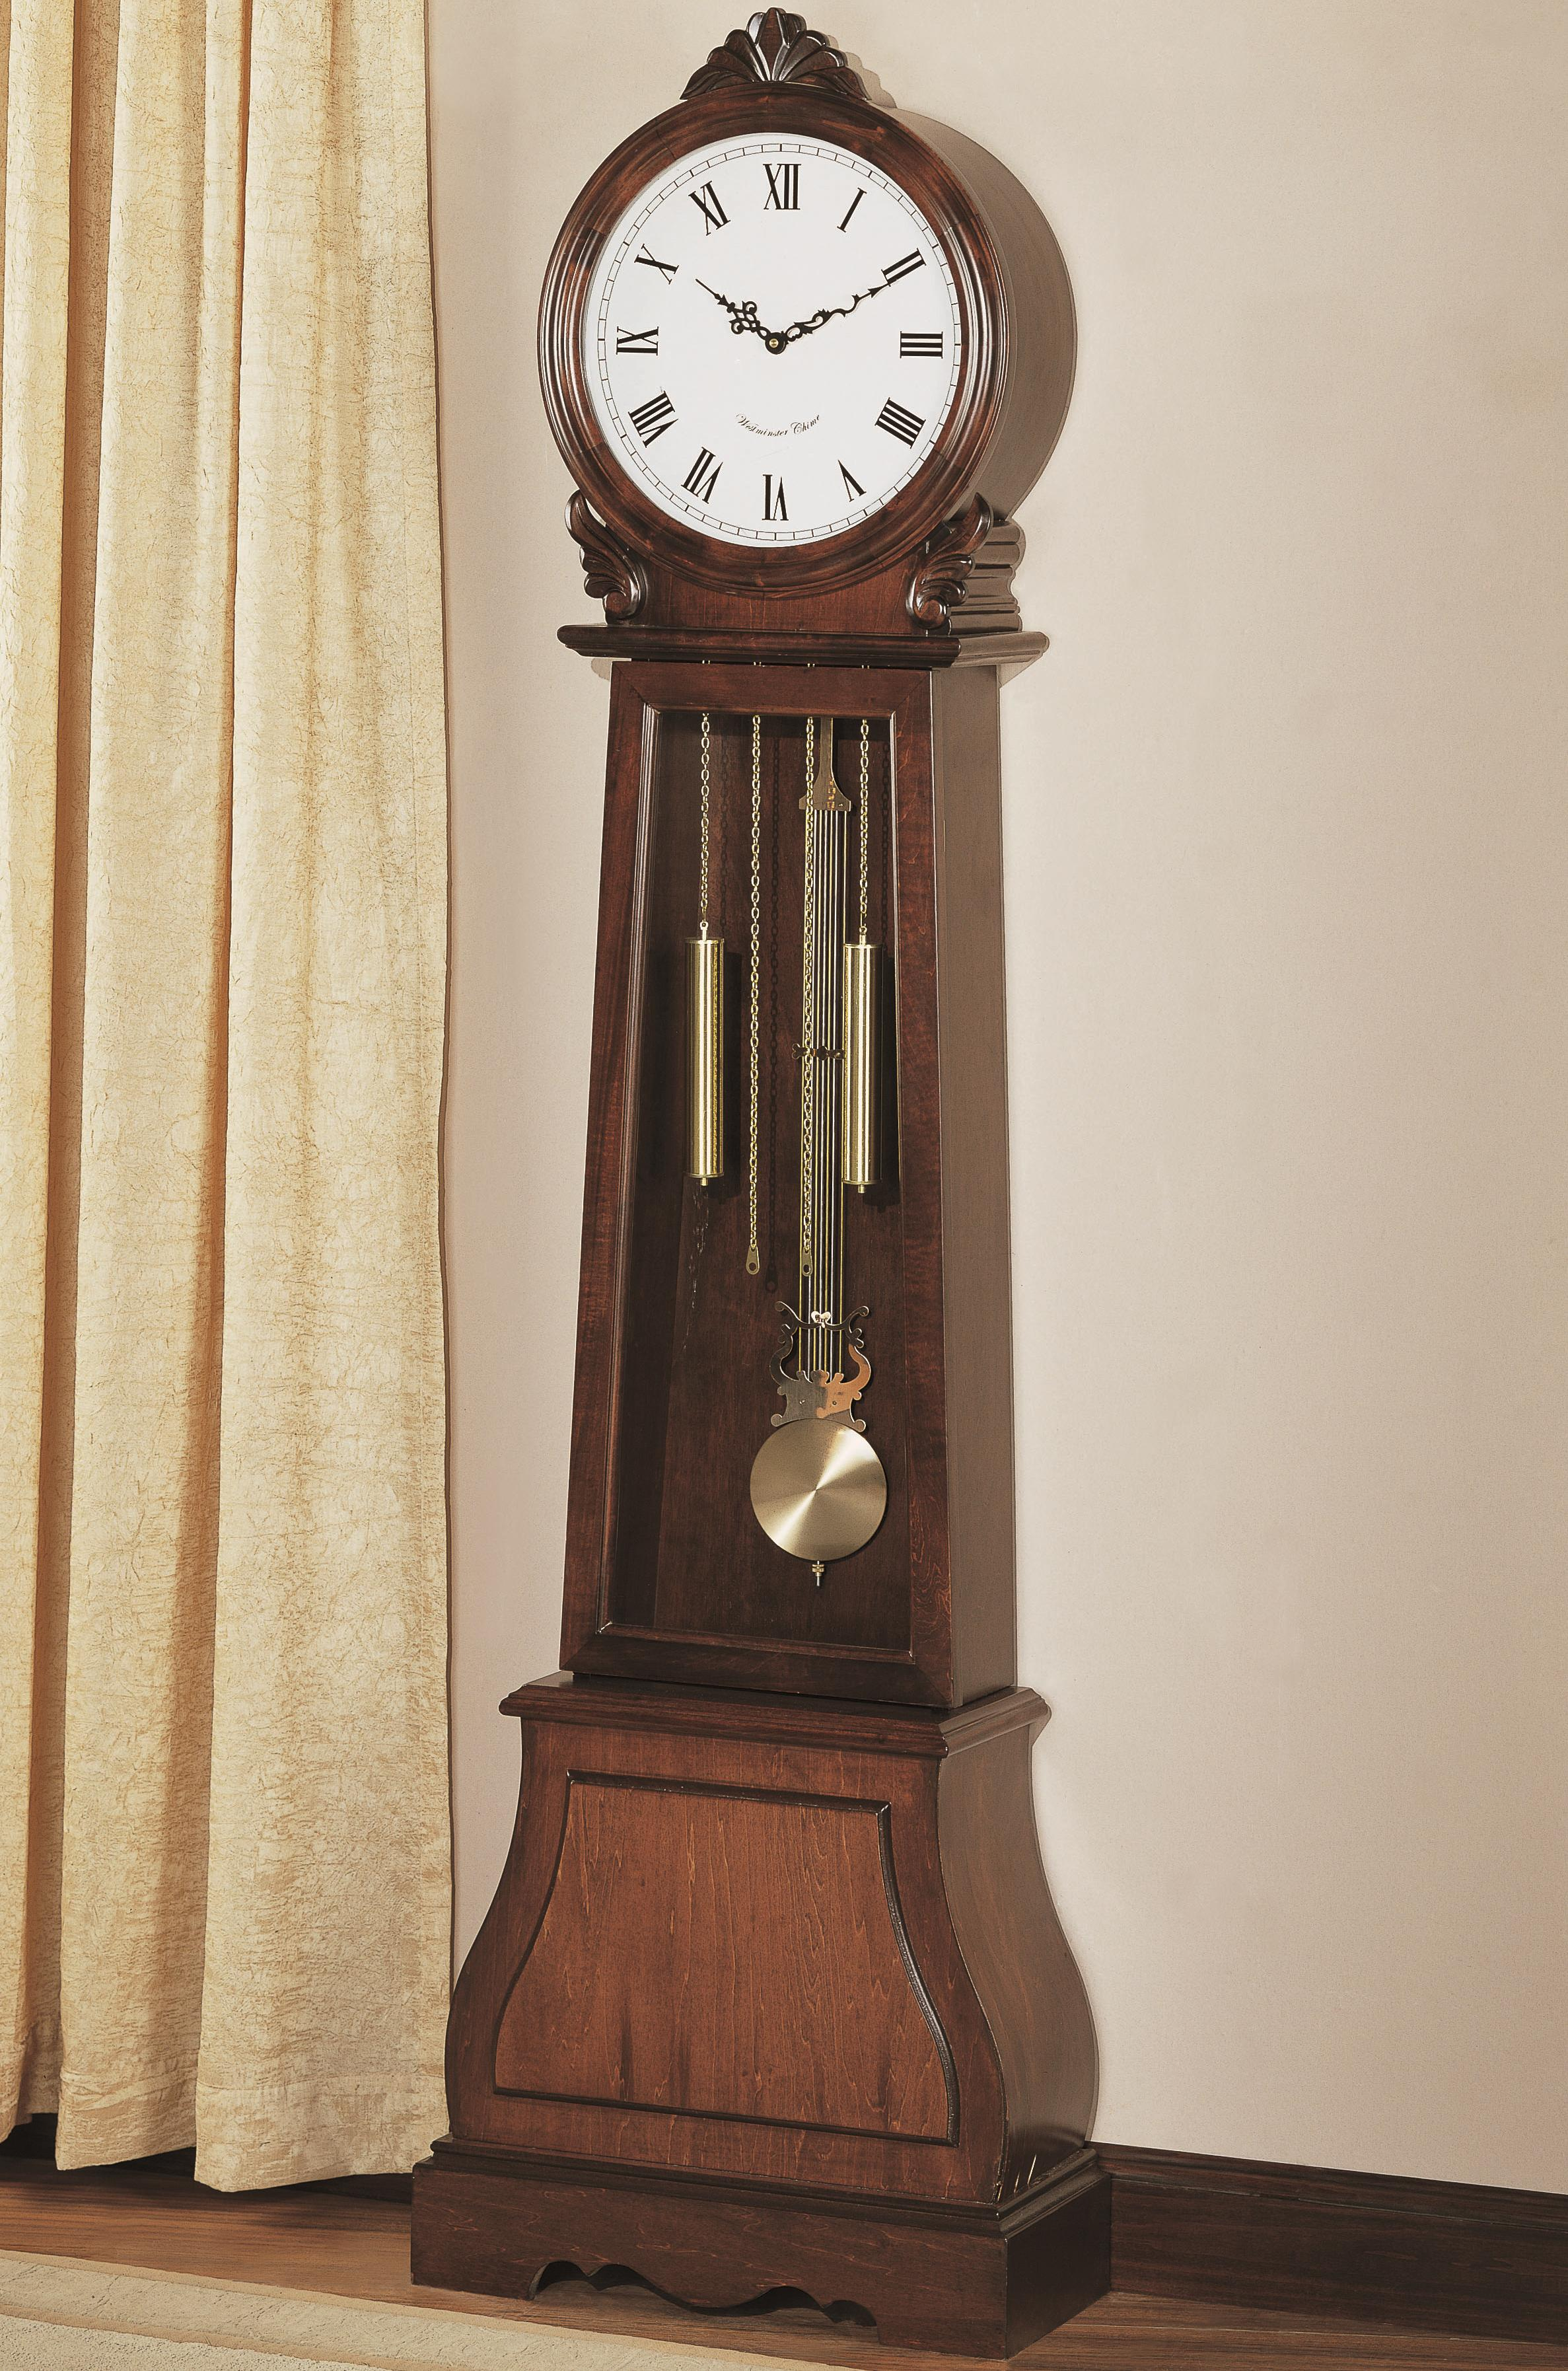 Coaster Grandfather Clocks Grandfather Clock - Item Number: 900723